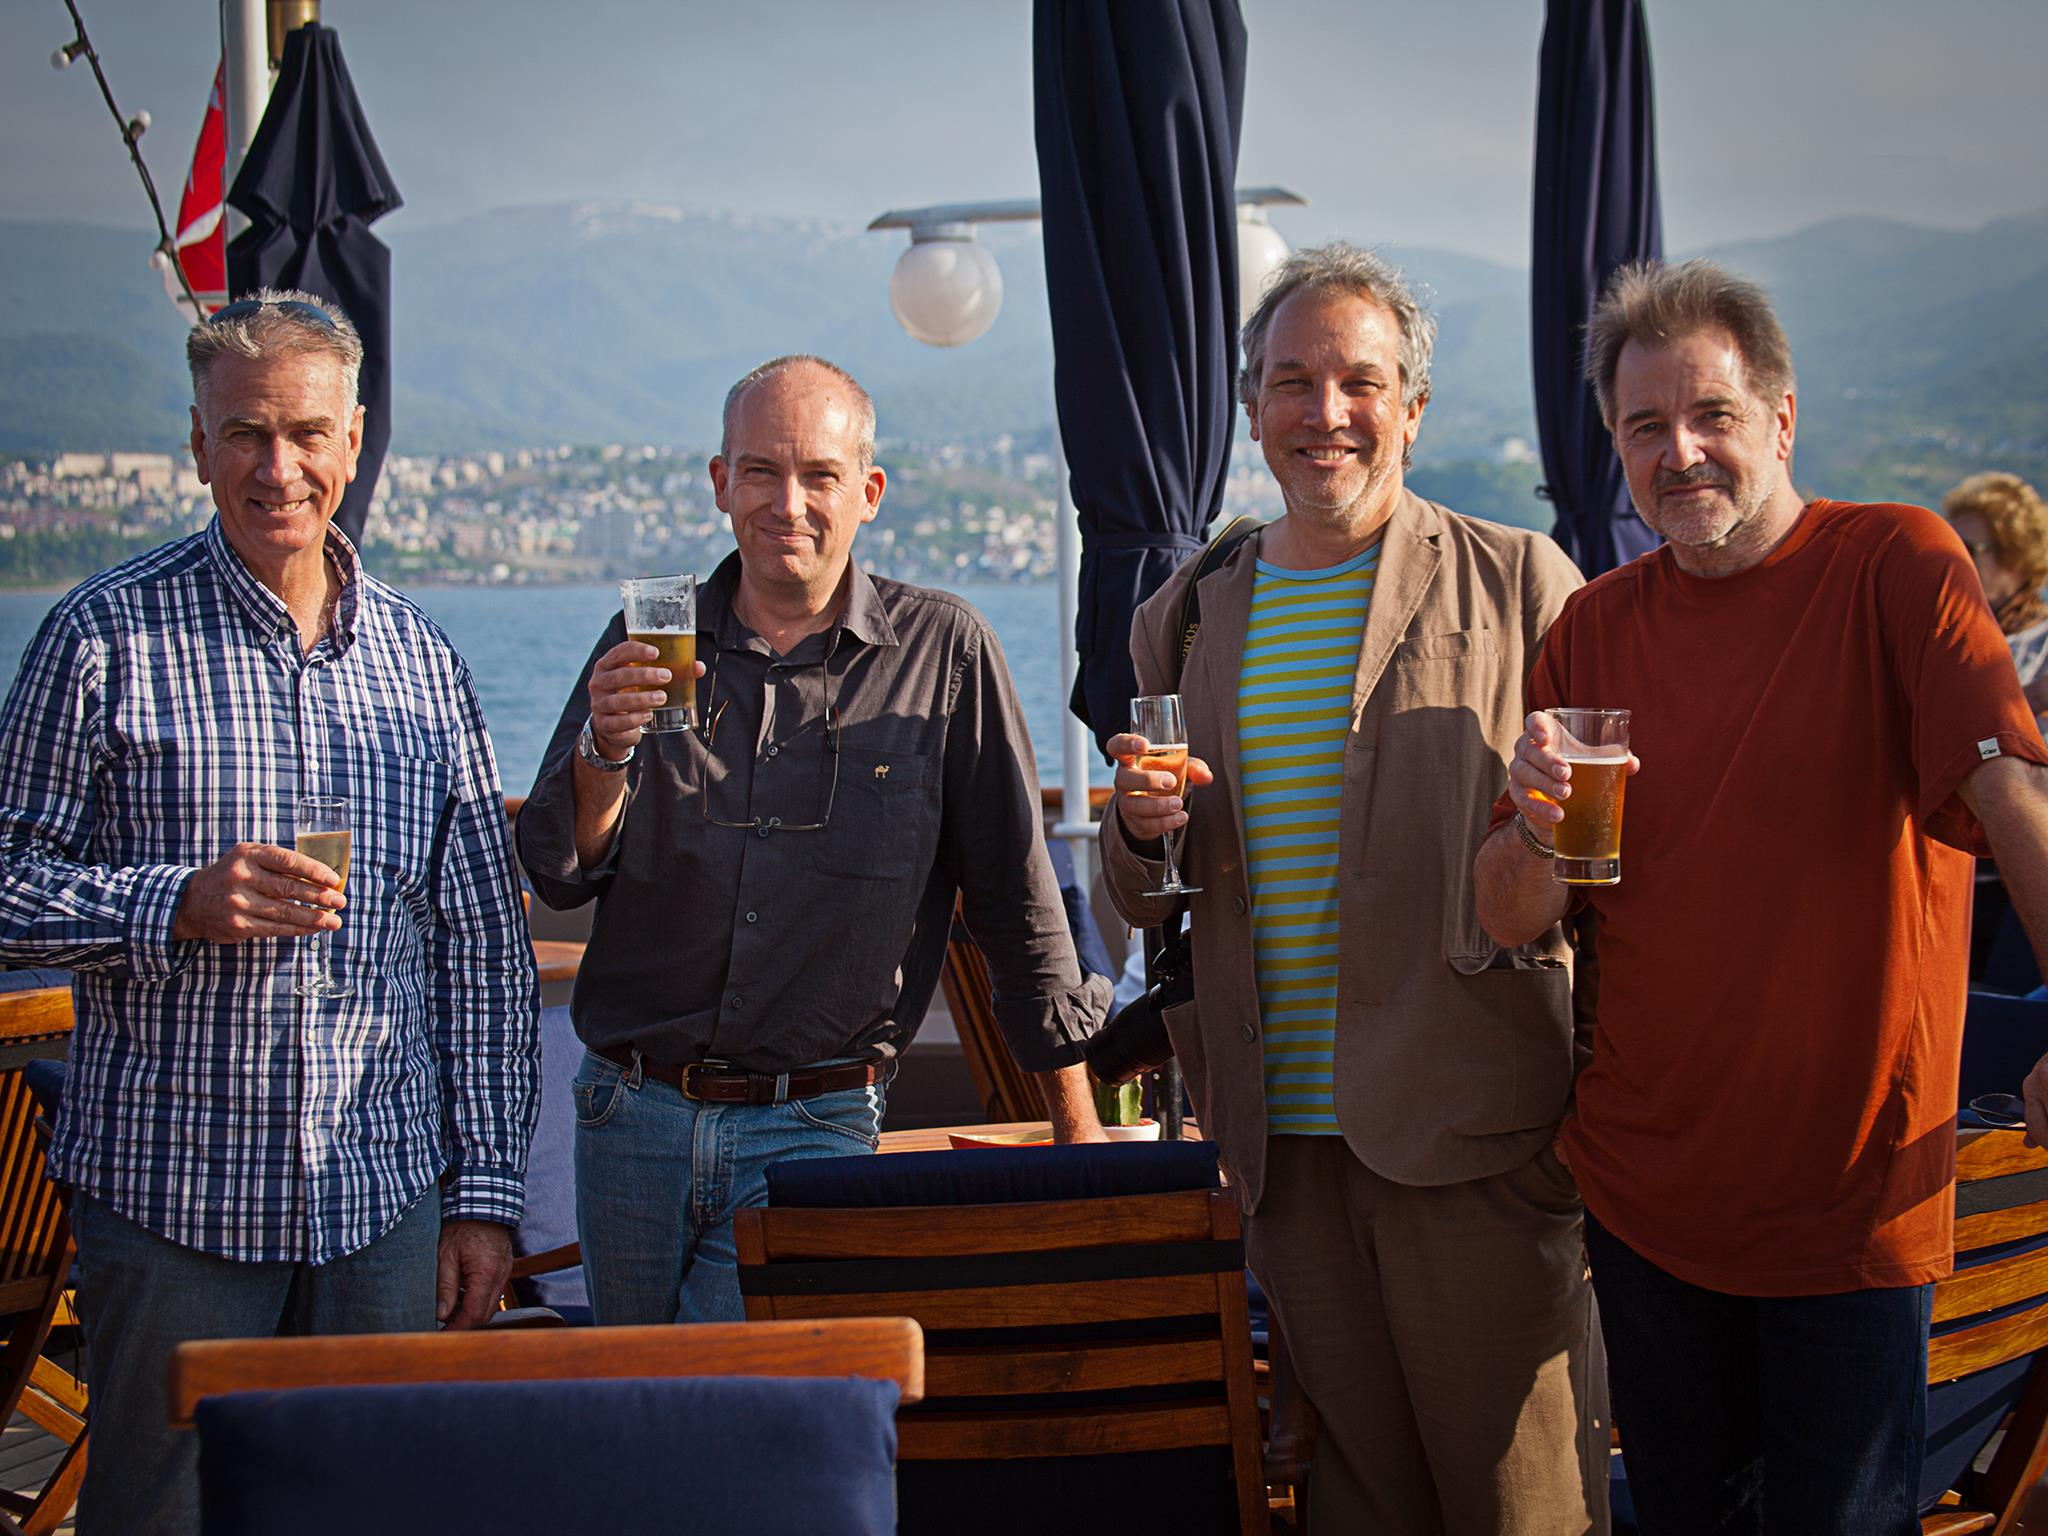 Left to right: Peter de Vries, Nick Rains, Dr David Silverberg and yours truly.